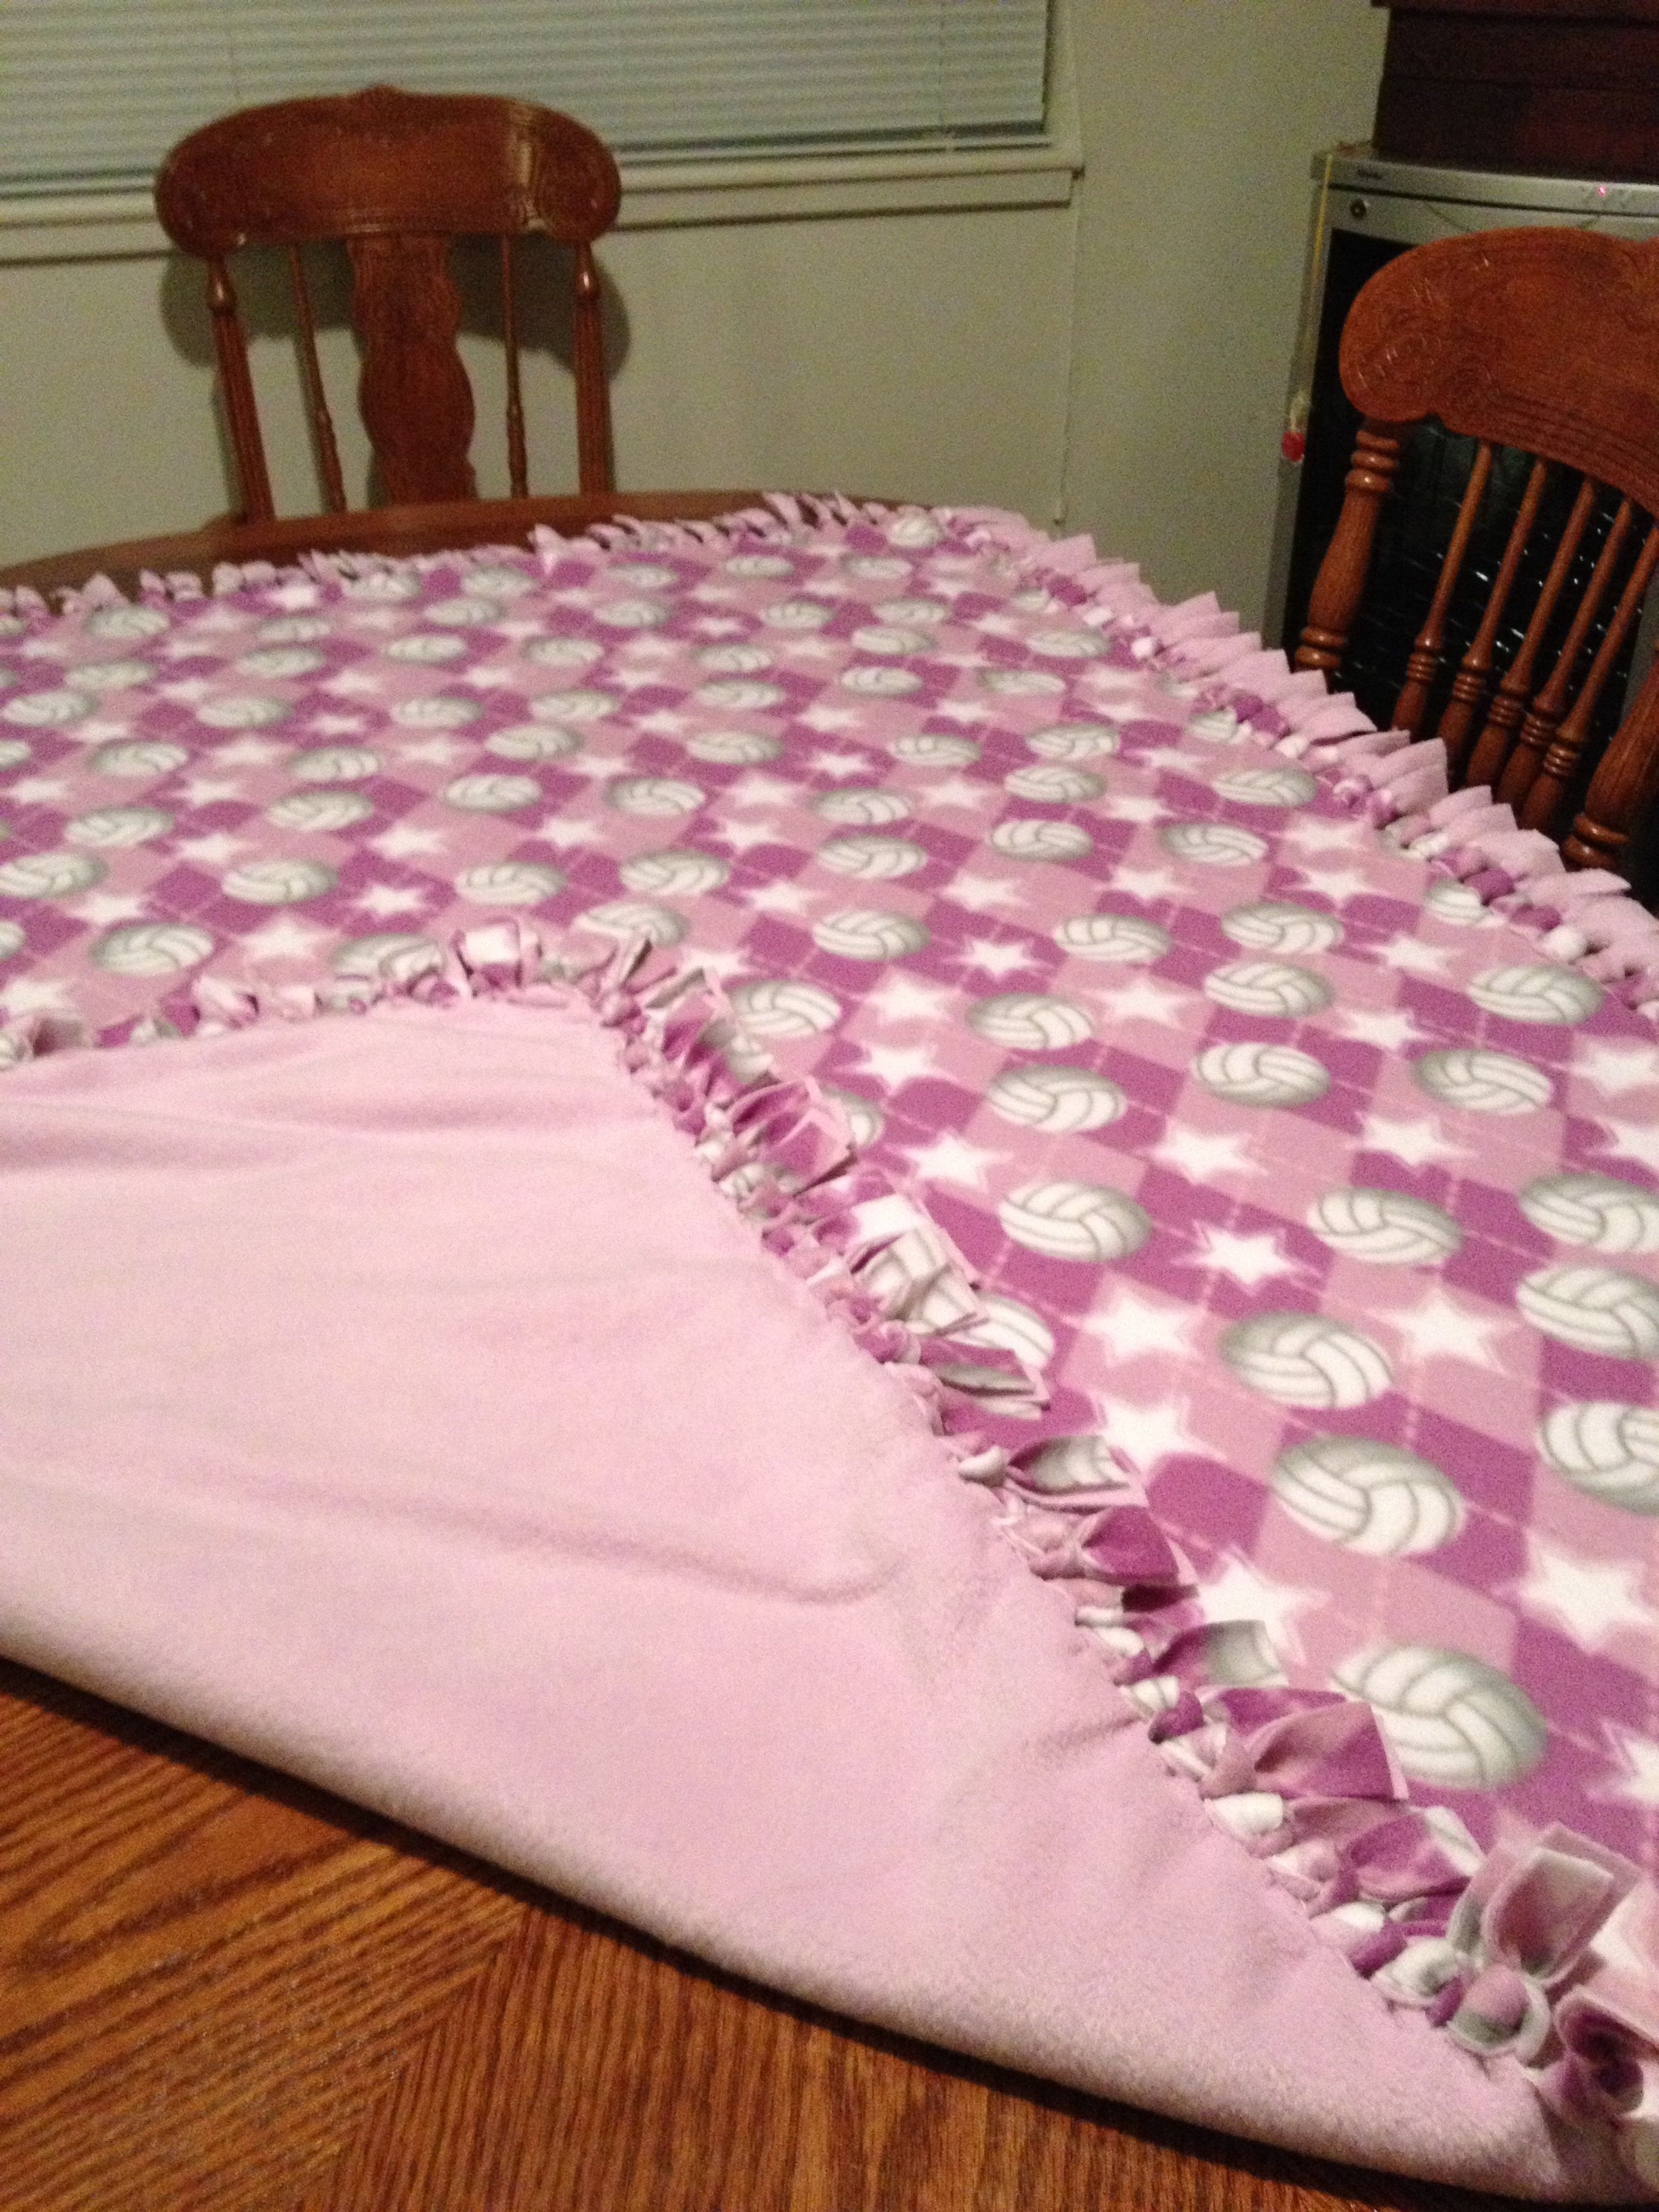 Volleyball No Sew Blanket No Sew Blankets Blanket Diy Blanket